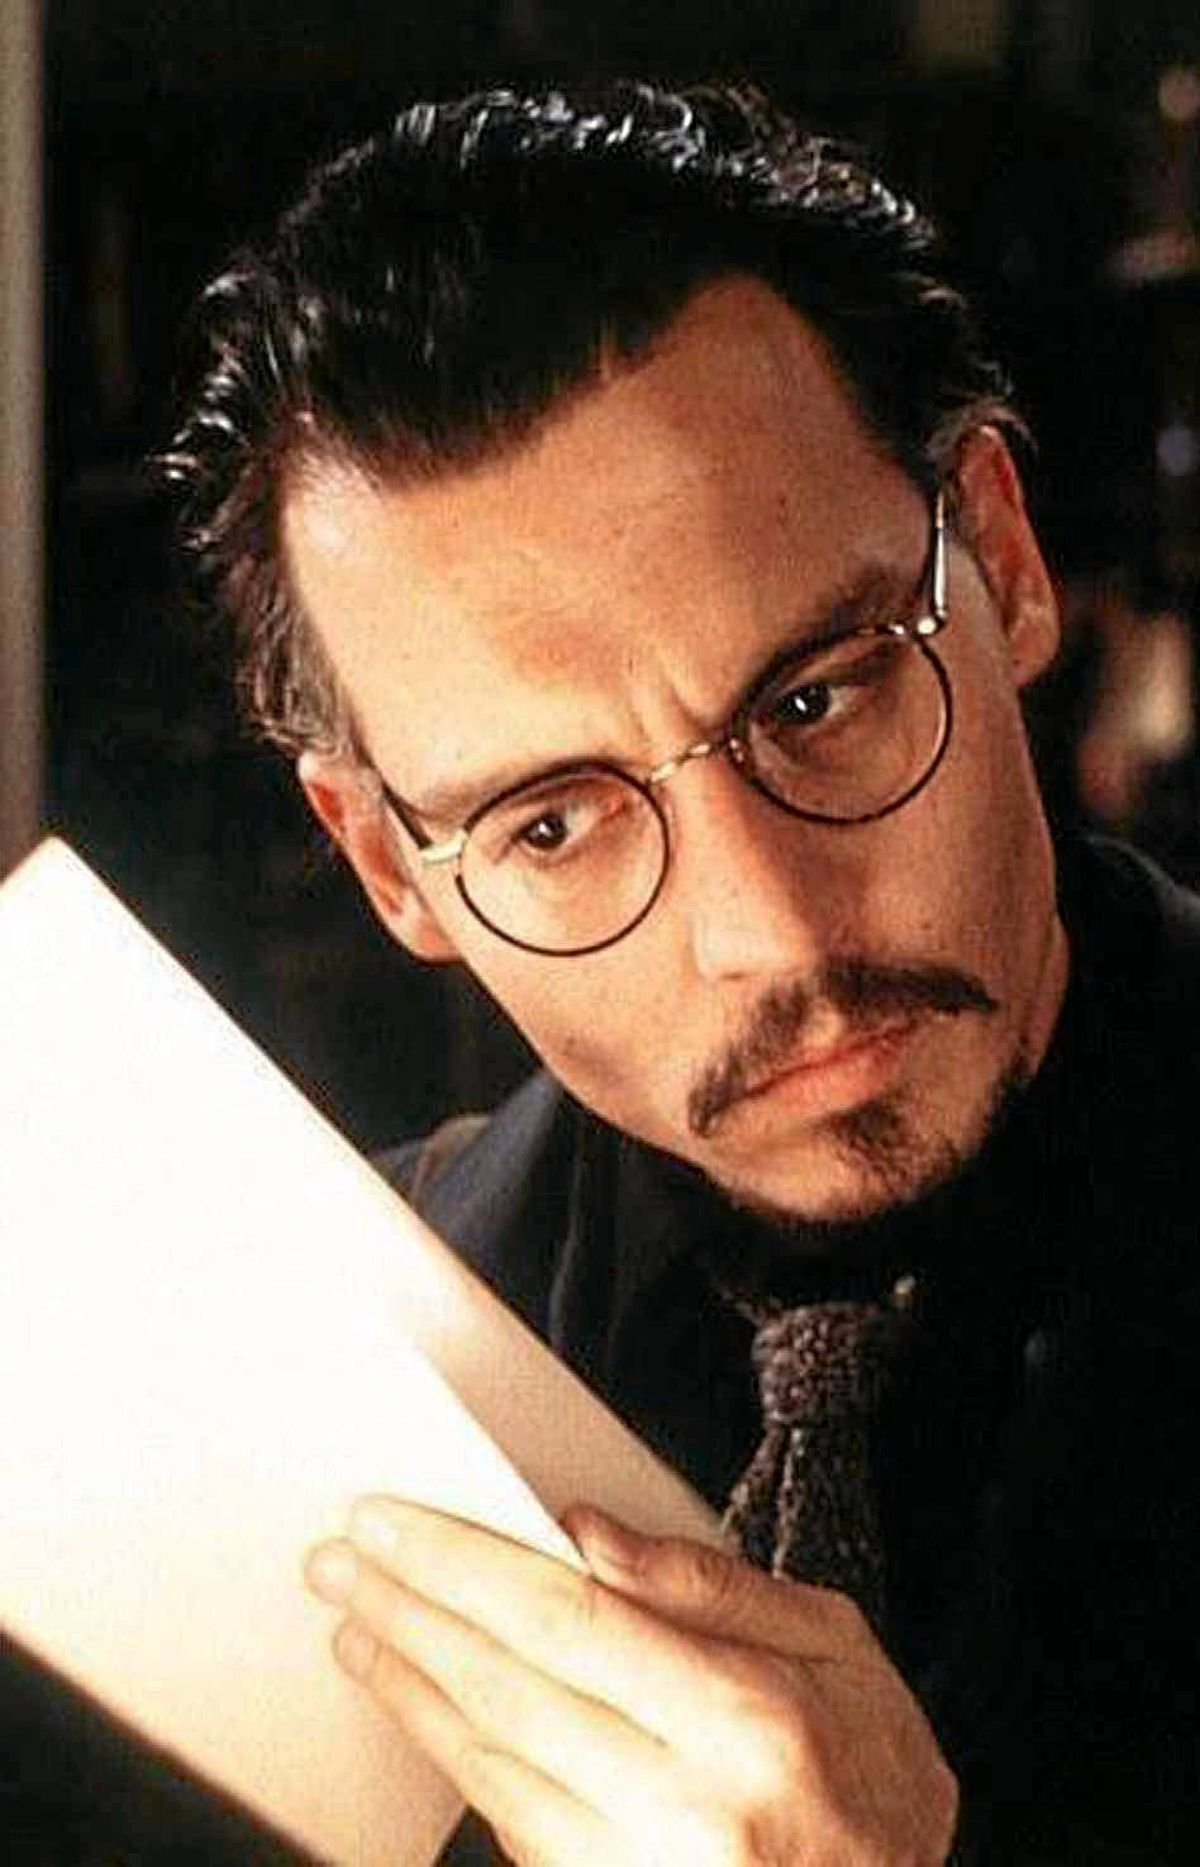 MOVIE The Ninth Gate Bravo!, 11 p.m. ET; 8 p.m. PT Remember when Johnny Depp took chances in his choice of movie roles? In this 1999 thriller directed by Roman Polanski, he plays the rare-book dealer Dean Corso, who is hired by the ominous bibliophile Boris (Frank Langella) to prove the authenticity of a 17th-century book called The Nine Gates. As he tracks down the other two known owners, he discovers that the book contains clues that allegedly enable the owner to summon the devil himself. When his best friend Bernie (James Russo) turns up dead in a manner identical to one of the book's illustrations, Corso discovers he can't get rid of the cursed tome fast enough. It's no Rosemary's Baby, but it's still pretty scary.